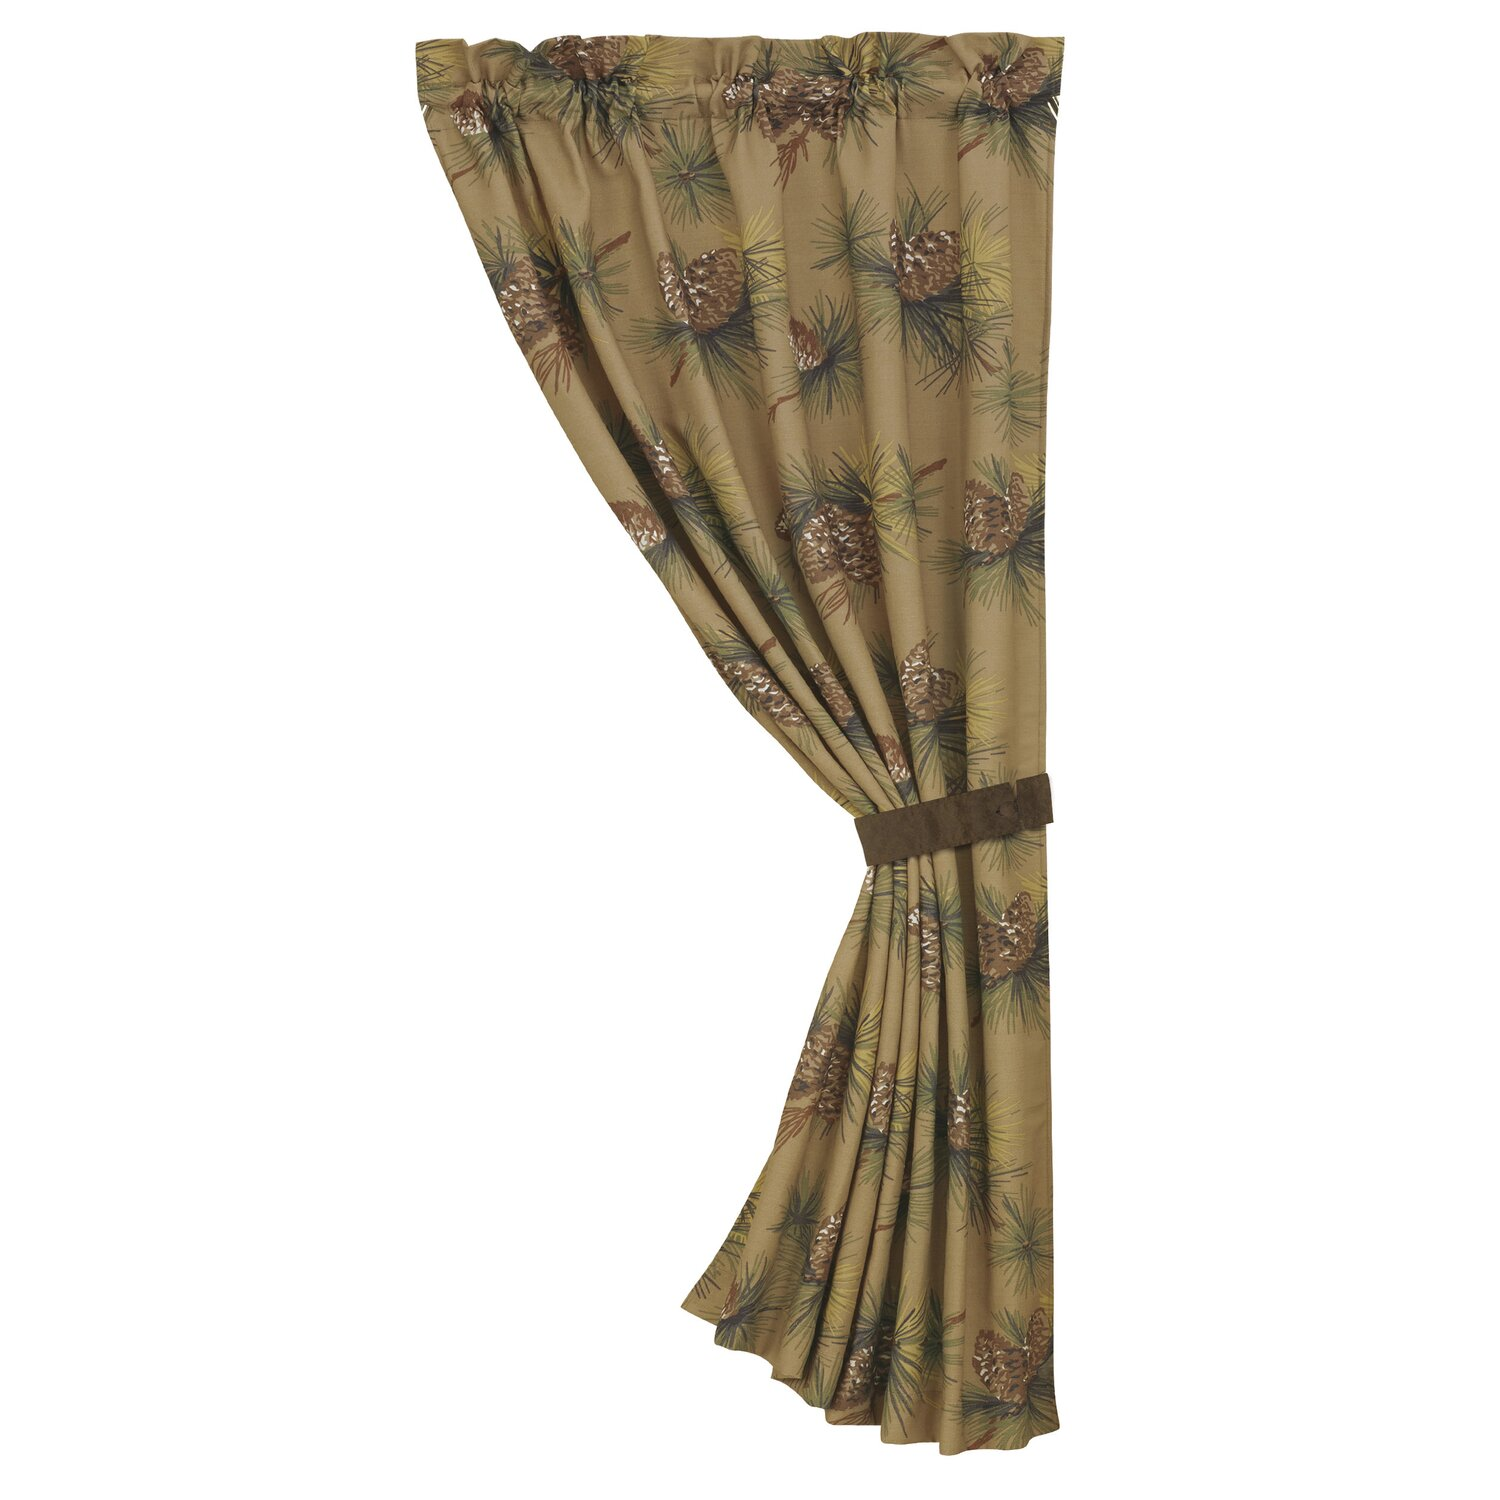 ... buy Pine Cone Curtains: Crestwood Pinecone Curtain Panel from Wayfair